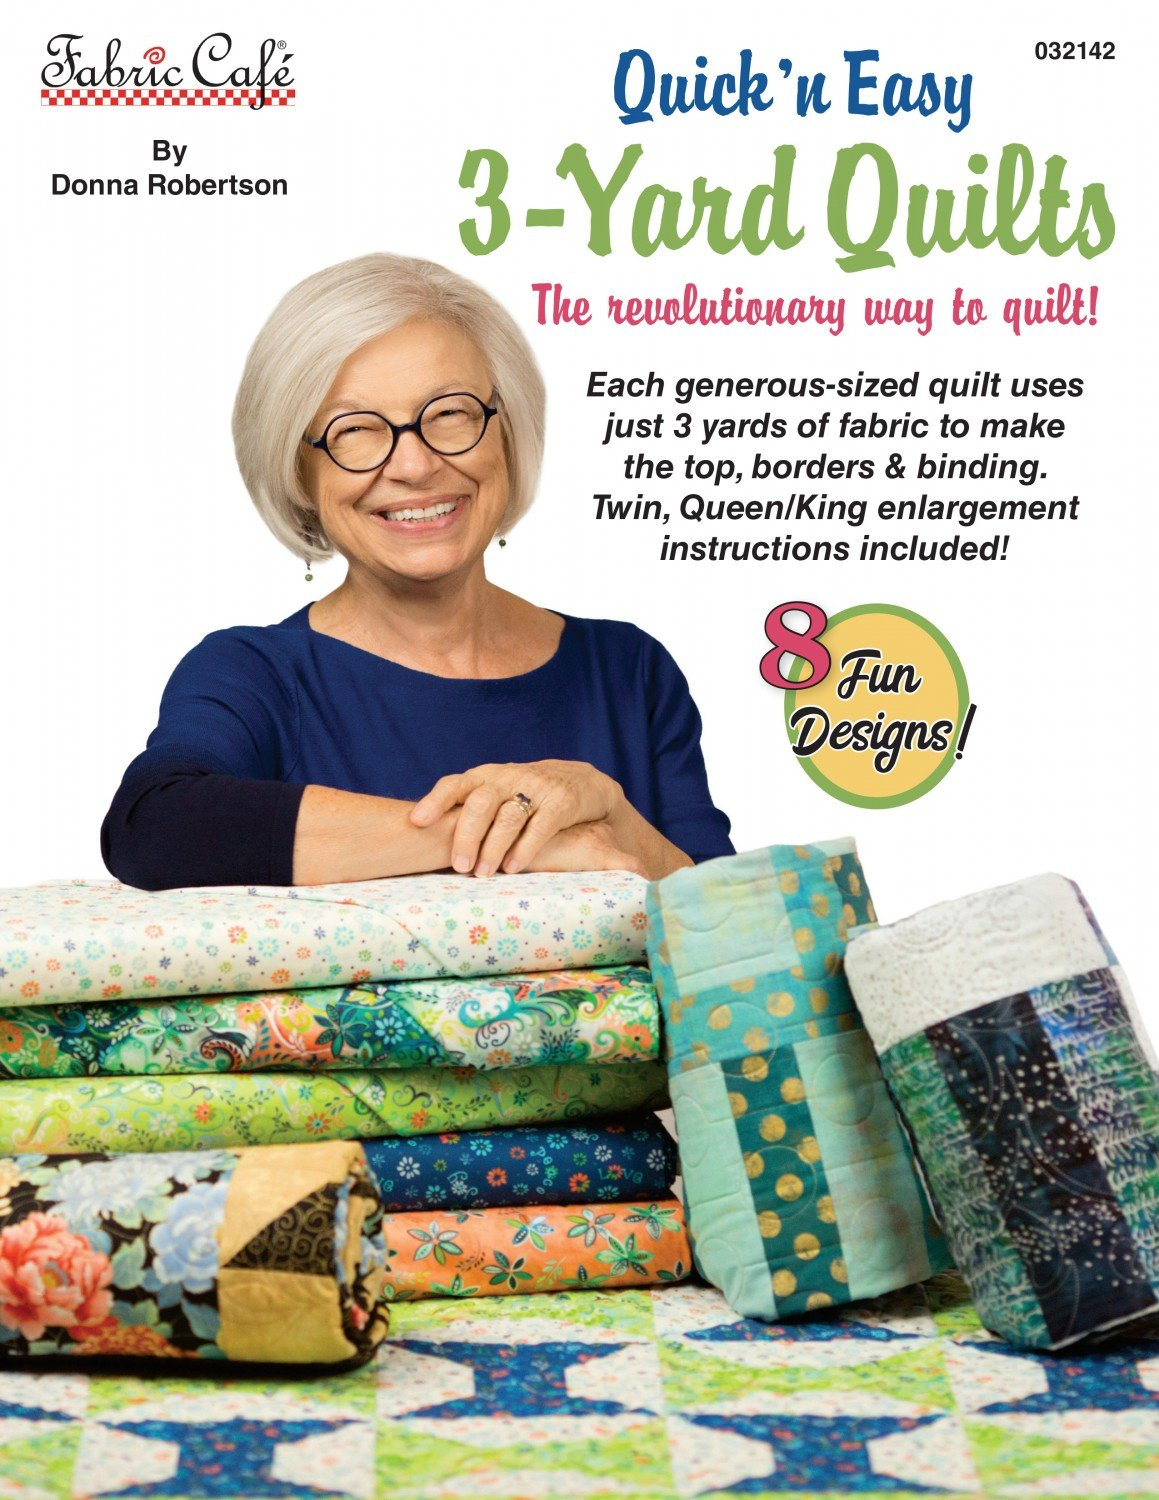 3 Yard Book - Quick'n Easy - Fabric Cafe - 032142-6